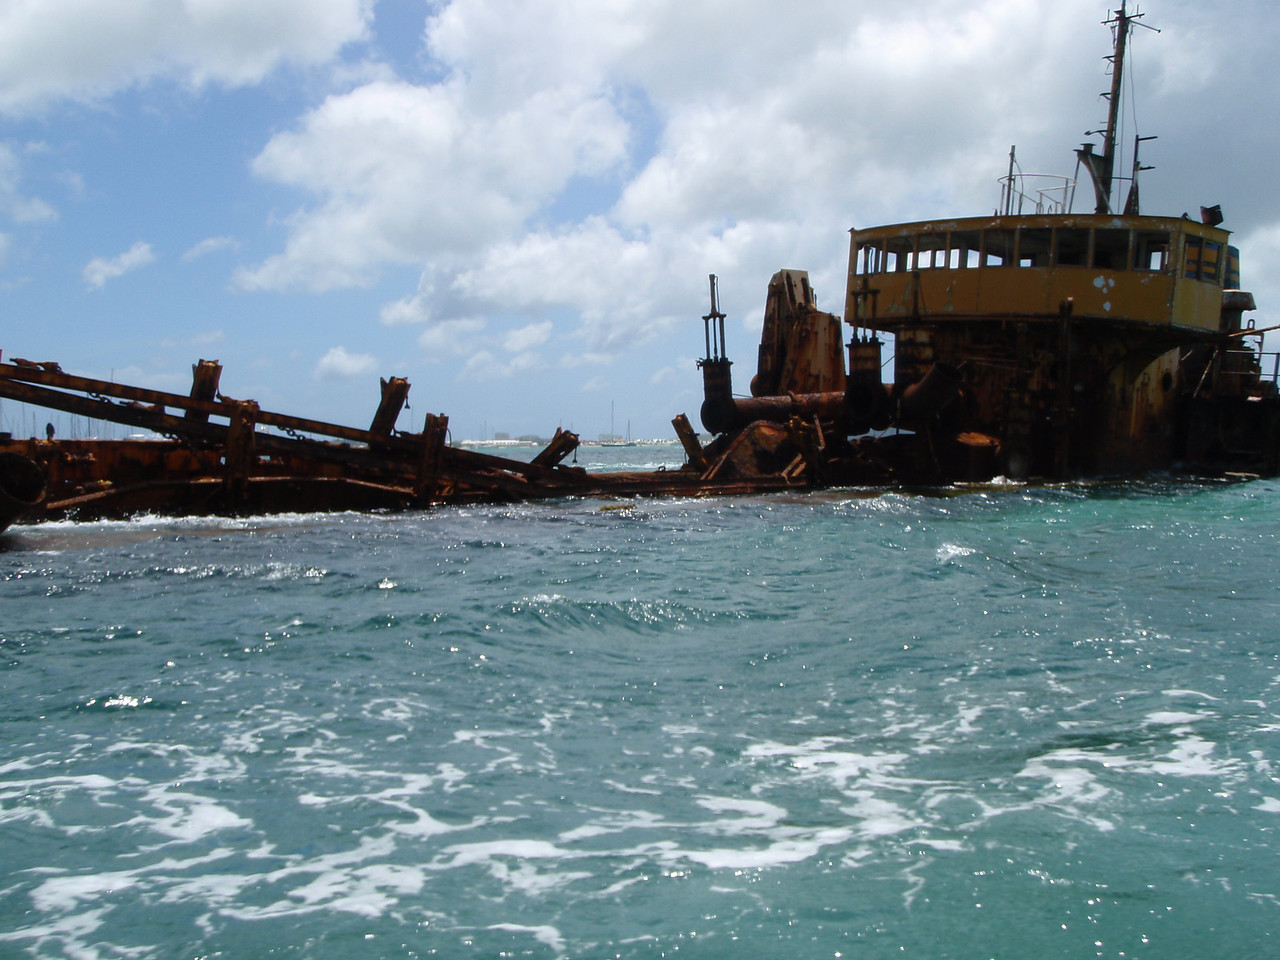 We cruised by this wreck in Simpson Bay Lagoon.